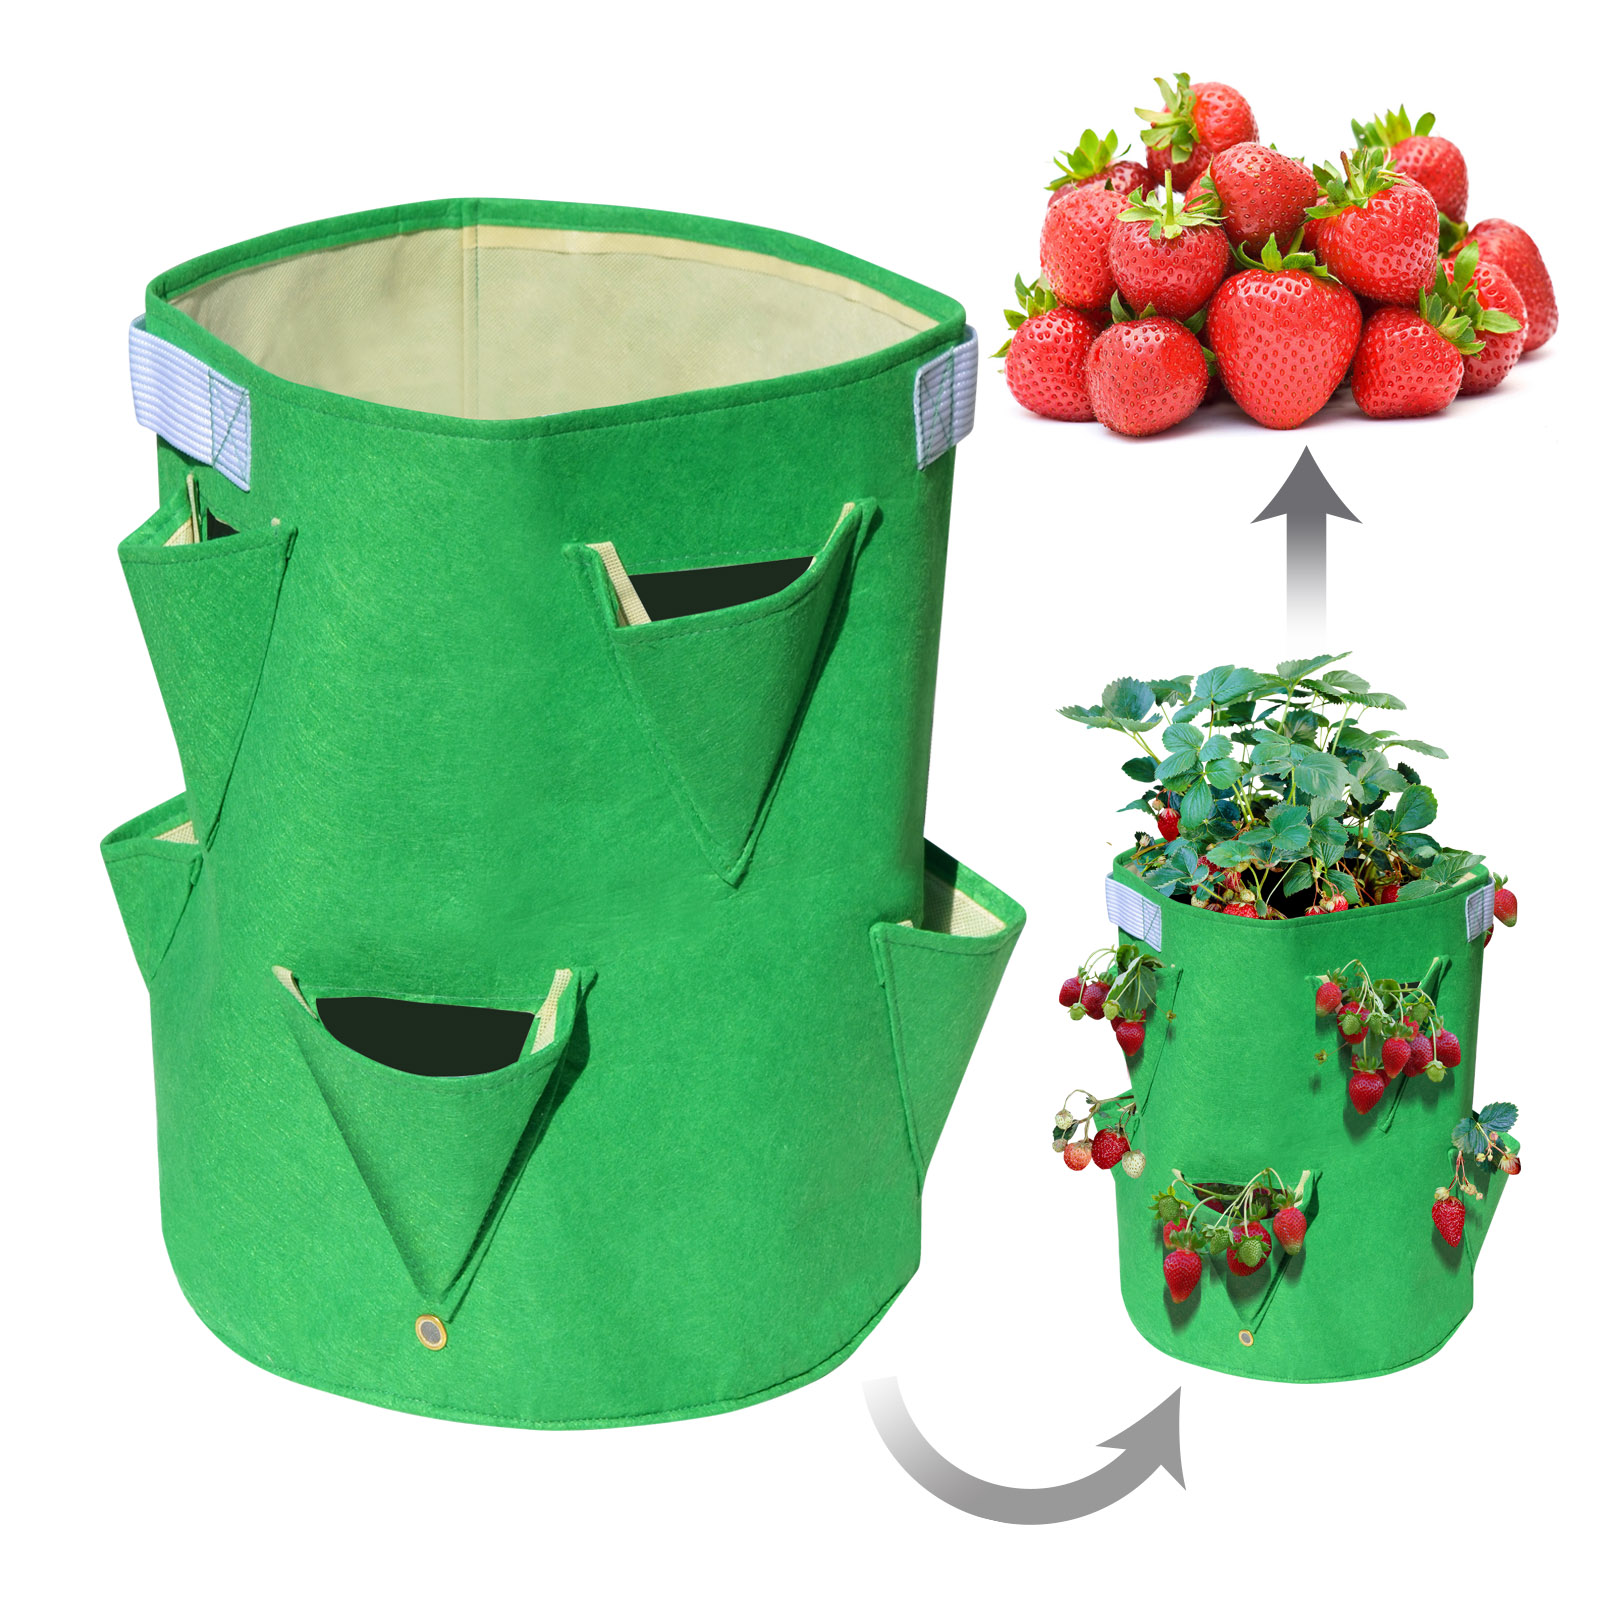 Strong Camel Planter Bag Felt Fabric Garden Planting Bag Grow Strawberry and Herb Plant Tub 1 Pack